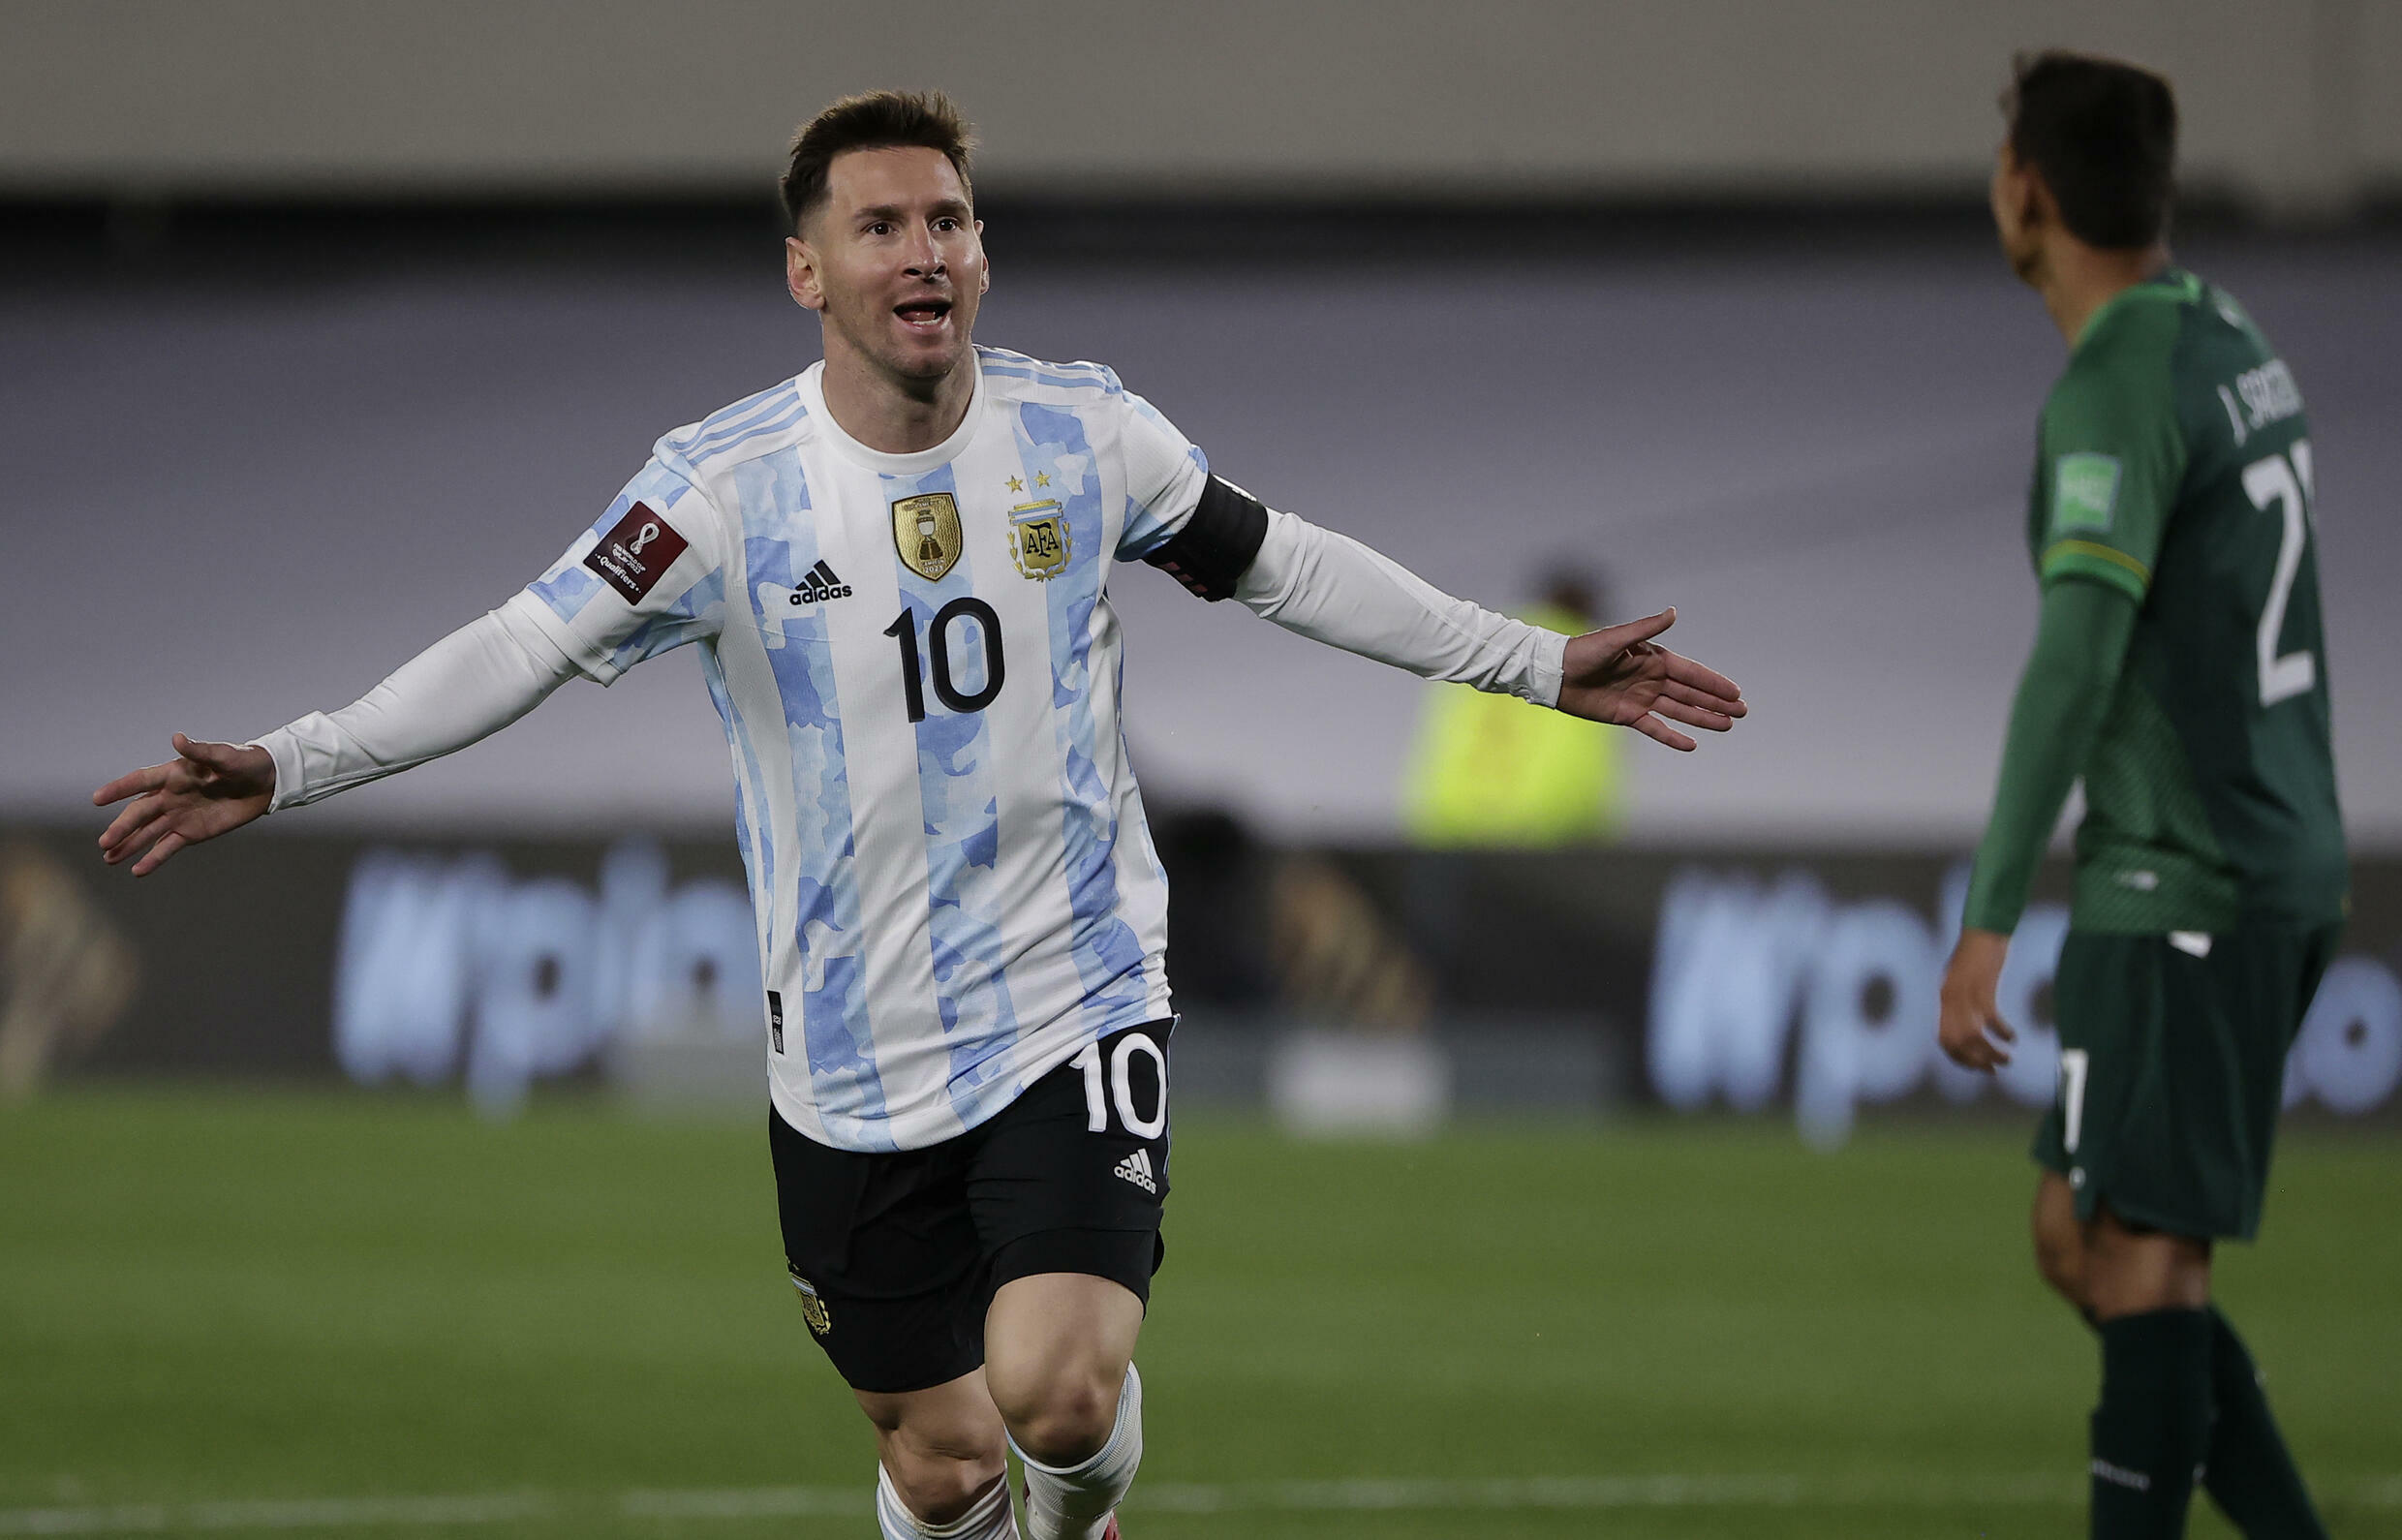 Argentina's Lionel Messi celebrates after scoring against Bolivia in a World Cup qualifier on Thursday